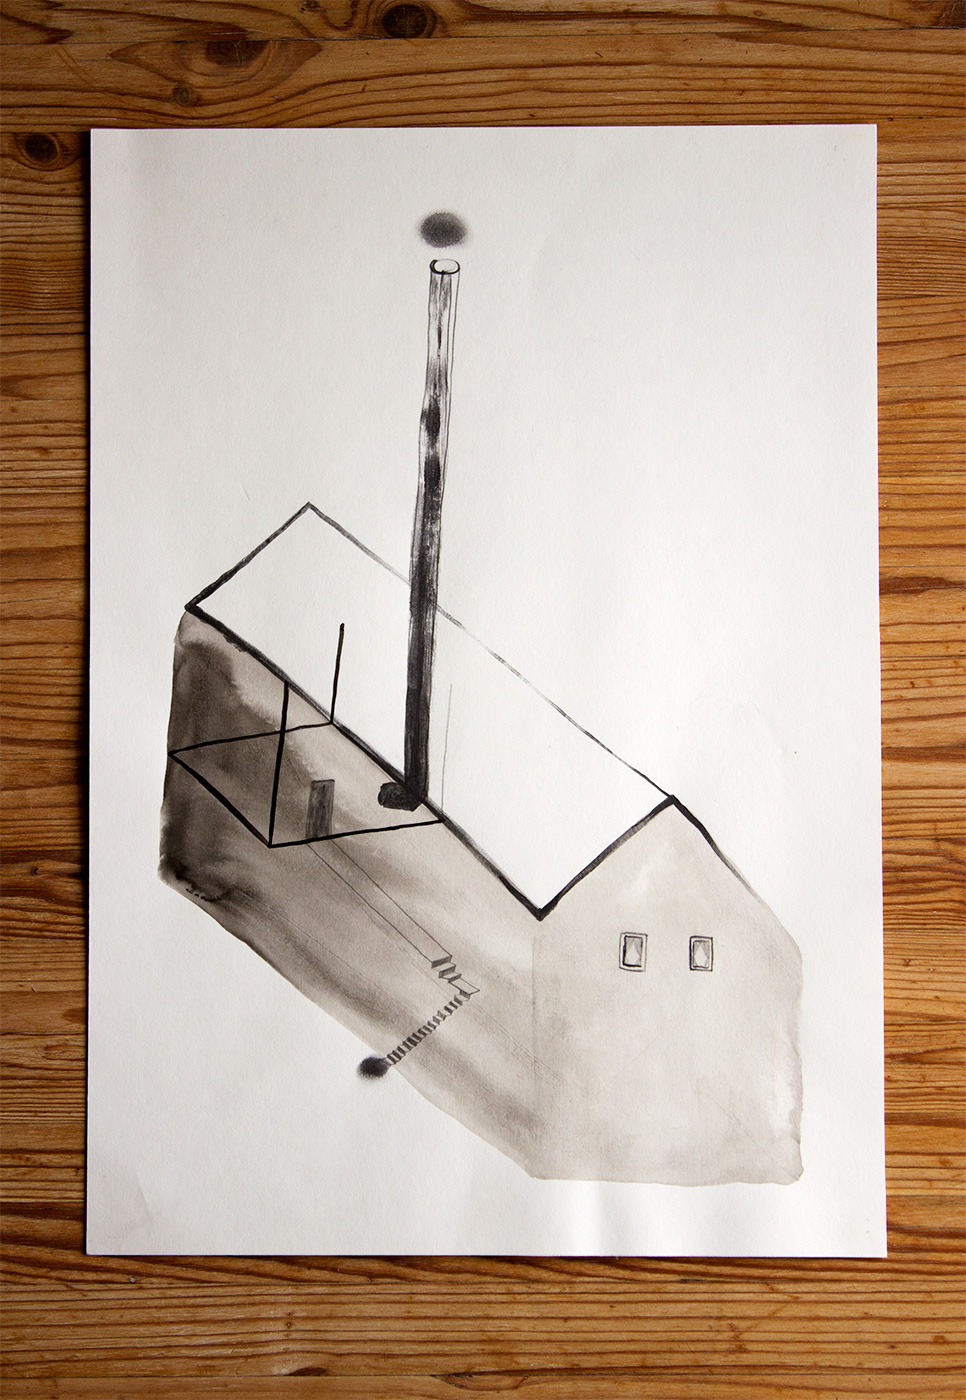 drawings, gouache, watercolors, geometric, monochrome, architecture, black, brown, grey, white, artliner, ink, paper, watercolor, architectural, beautiful, black-and-white, buildings, design, interior, interior-design, pretty, Buy original high quality art. Paintings, drawings, limited edition prints & posters by talented artists.